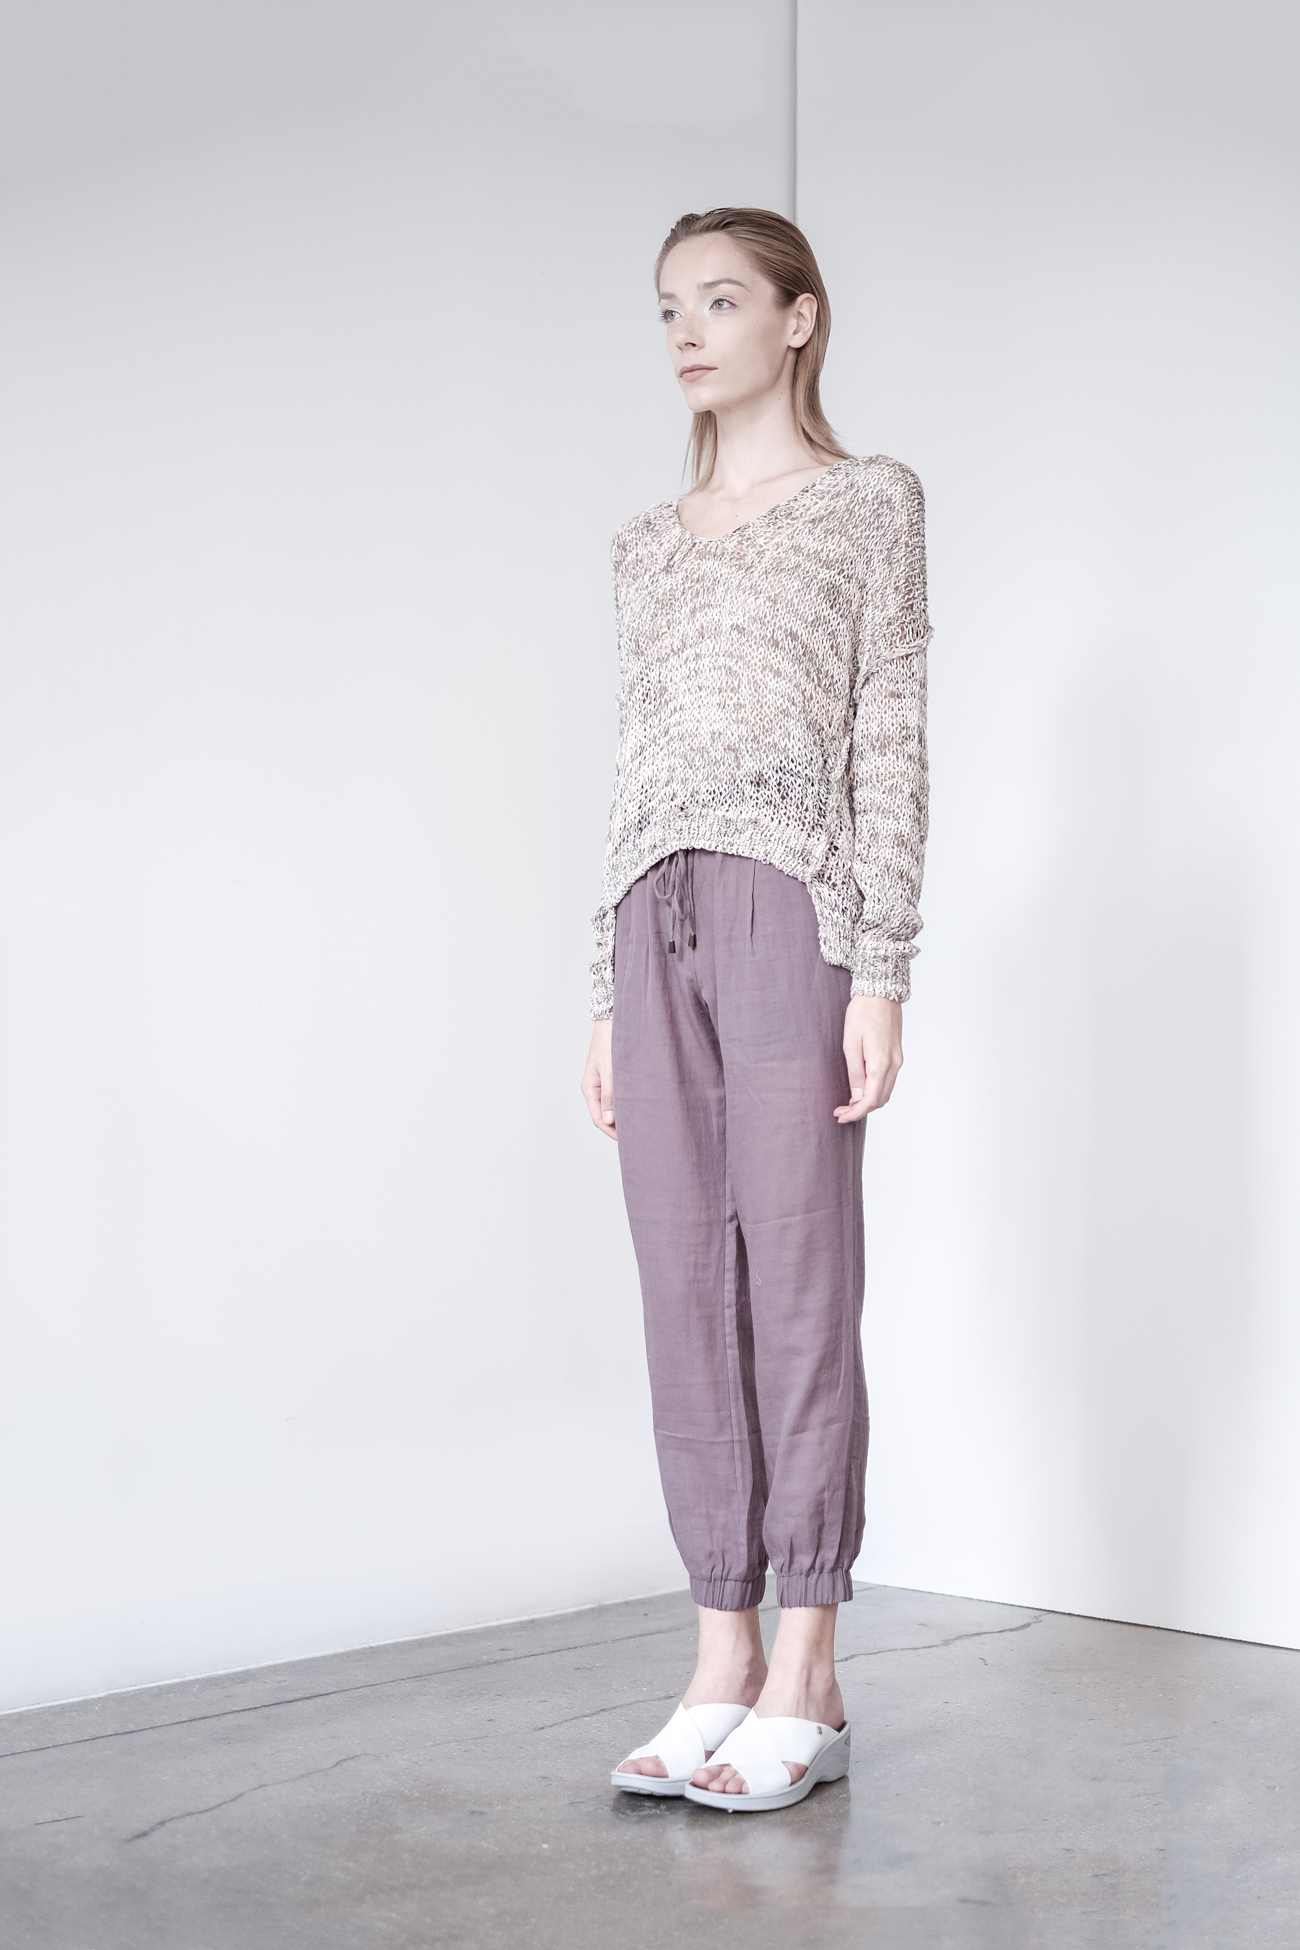 LOOK 20   TOP:   2299  / Marled Timber  -     Kate open knit slouchy pullover, in printed cotton, nylon.  WS: 102   BOTTOM:   2290  / Cinder  -   Jogger pants in 100% Cotton woven dbl. layer gauze.  WS: 88